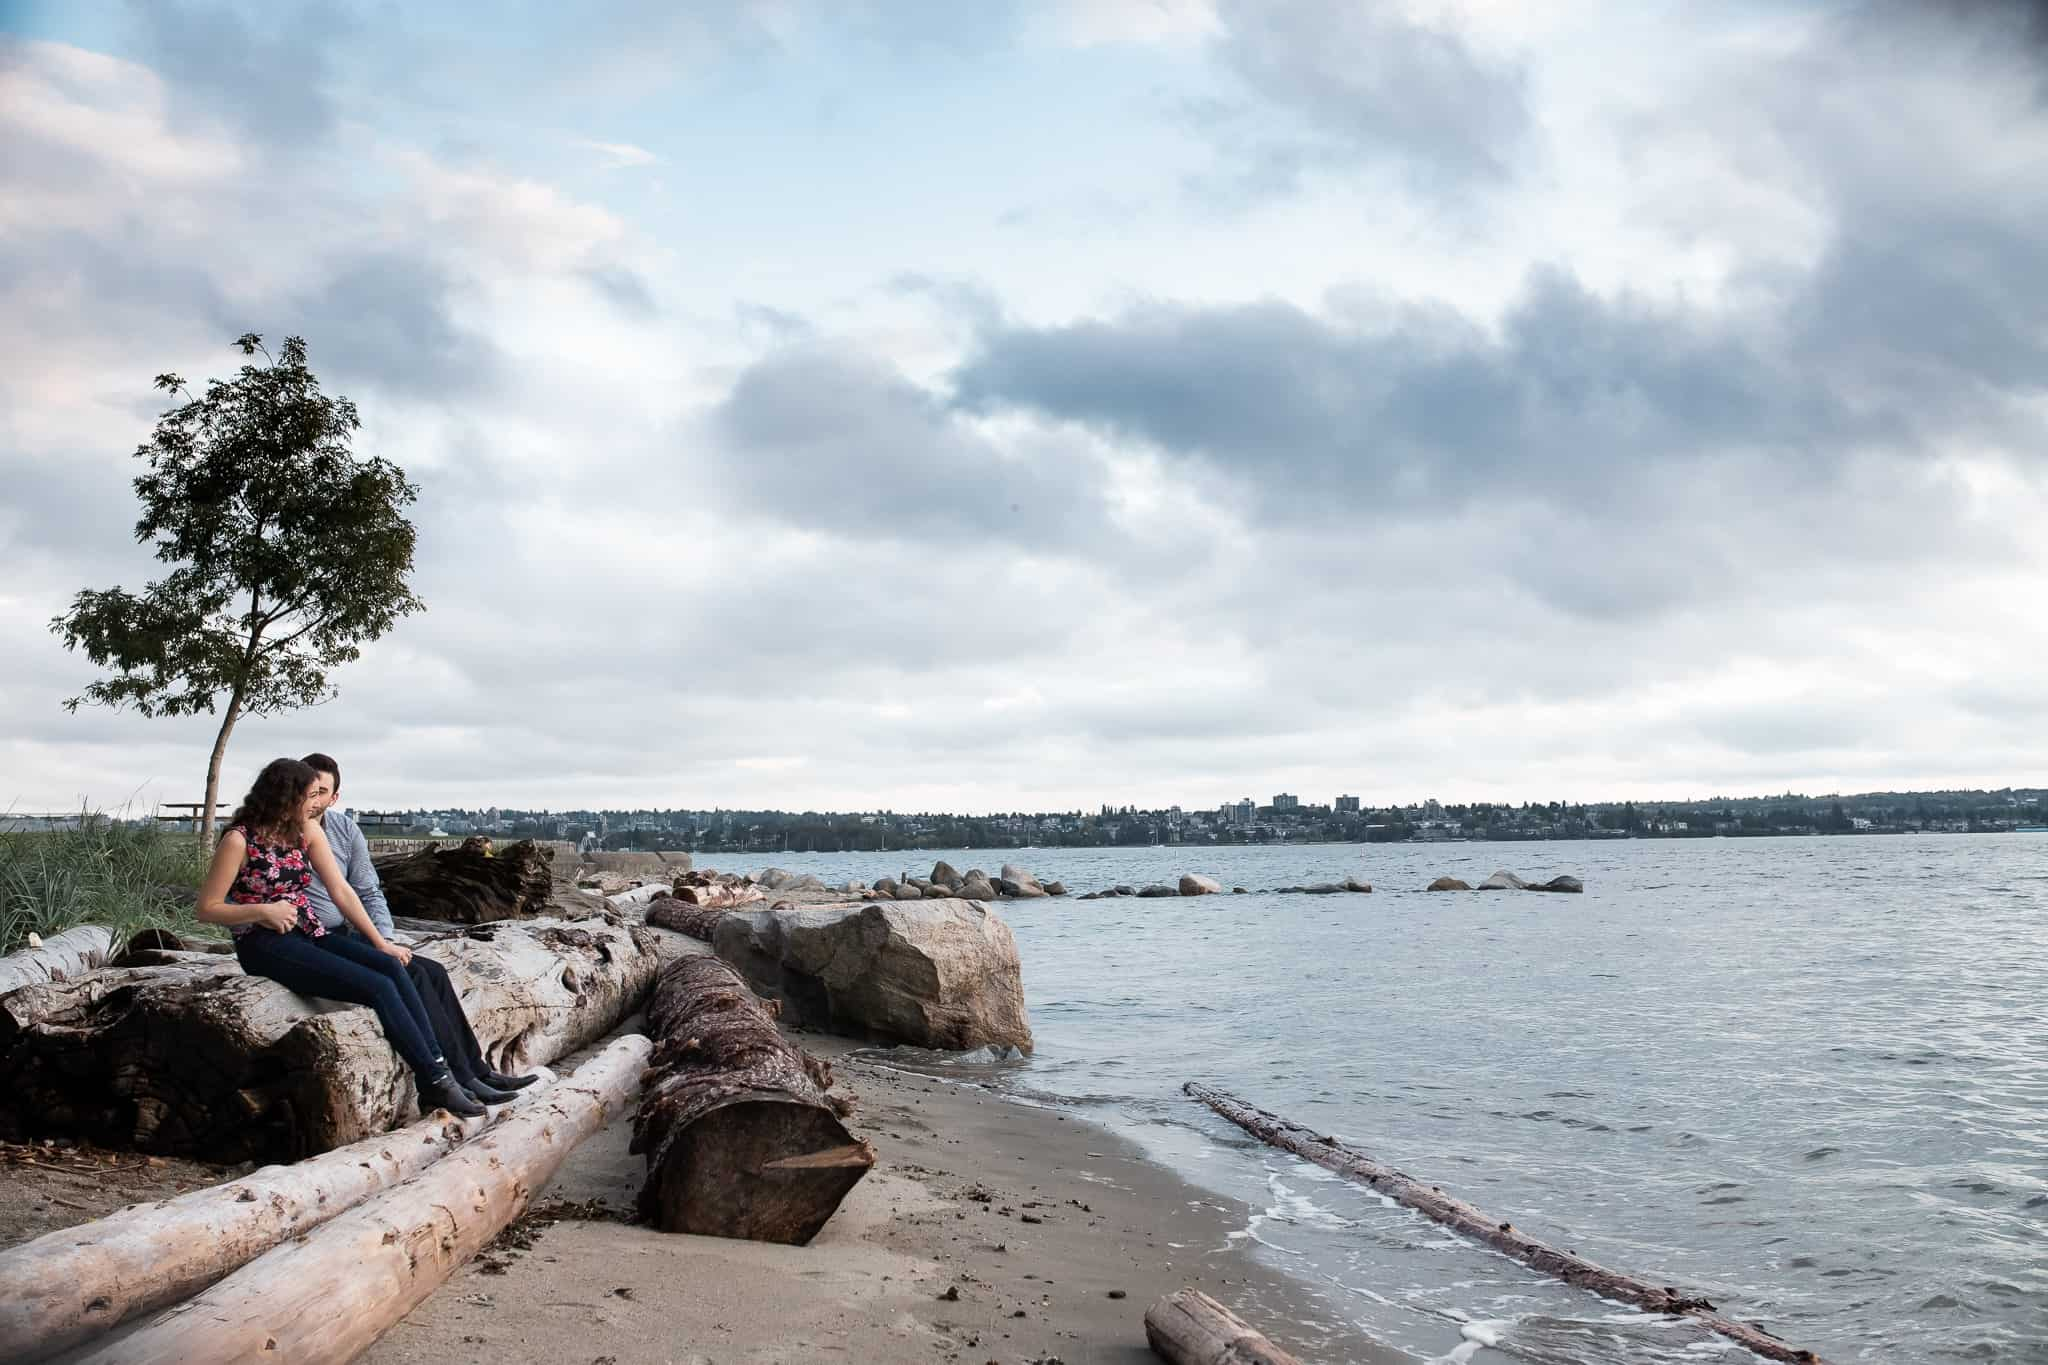 couple sitting on logs on the beach by the ocean with city scape in background